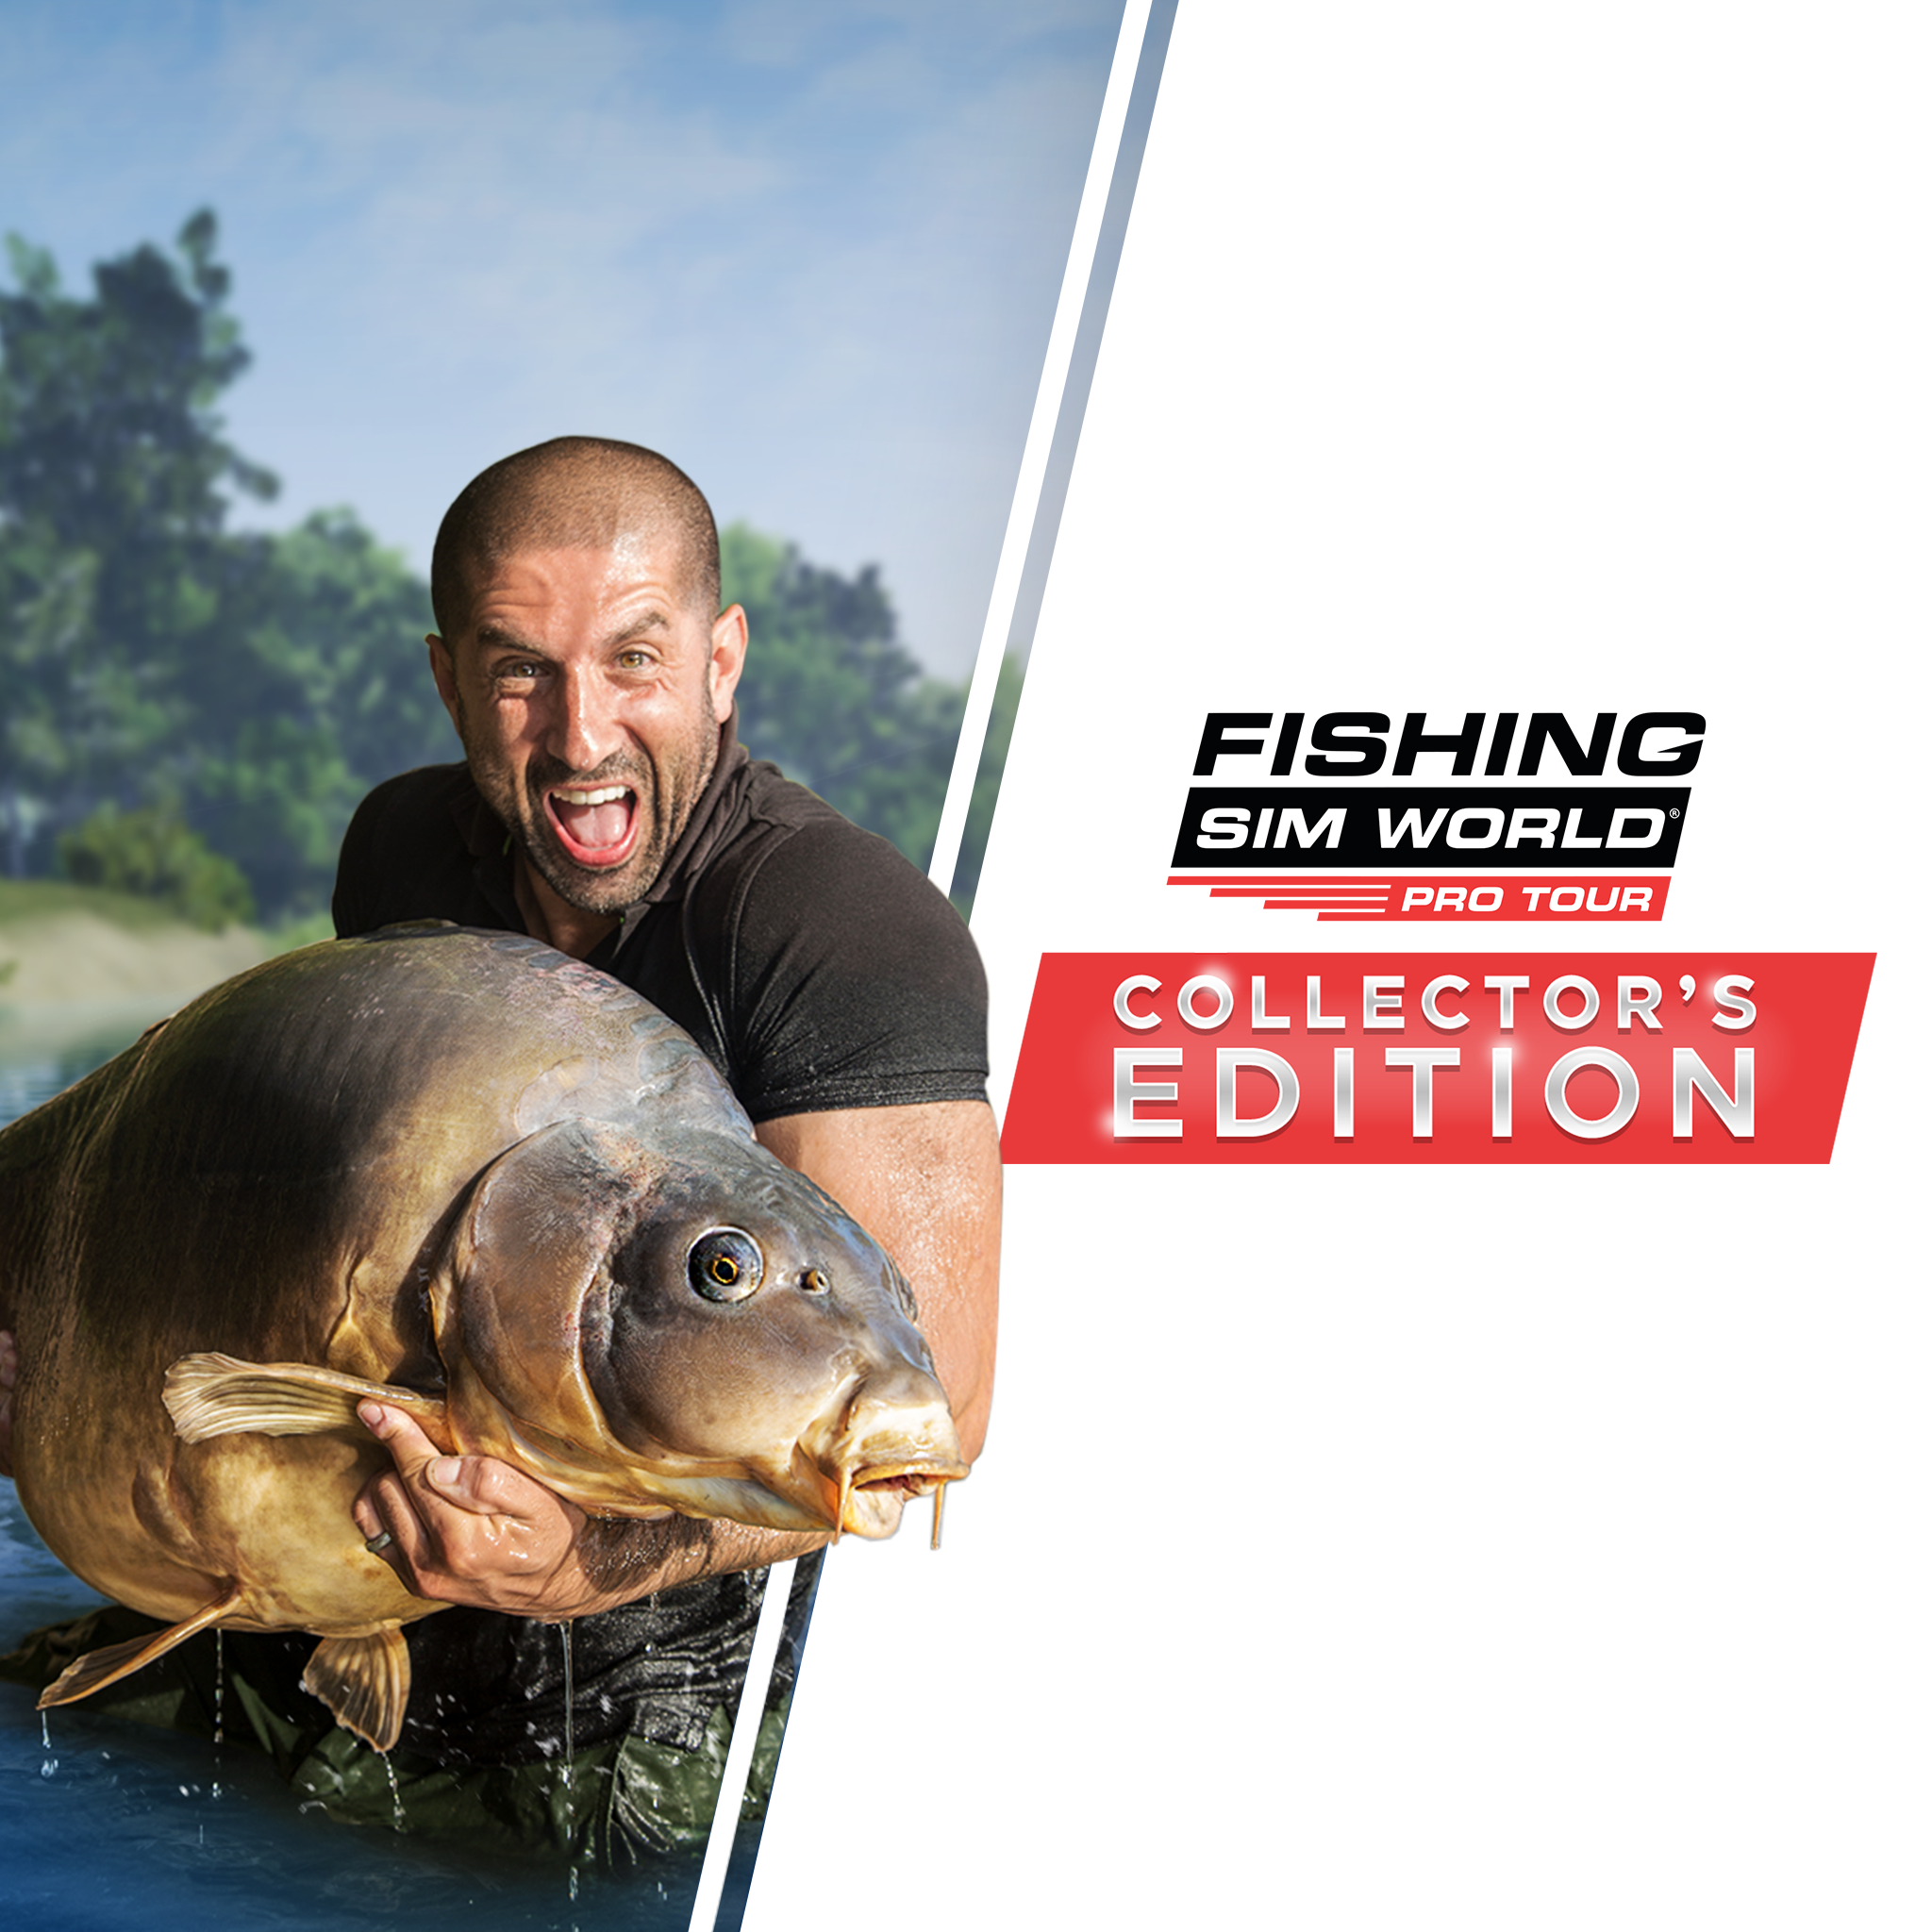 Fishing Sim World®: Pro Tour Collector's Edition